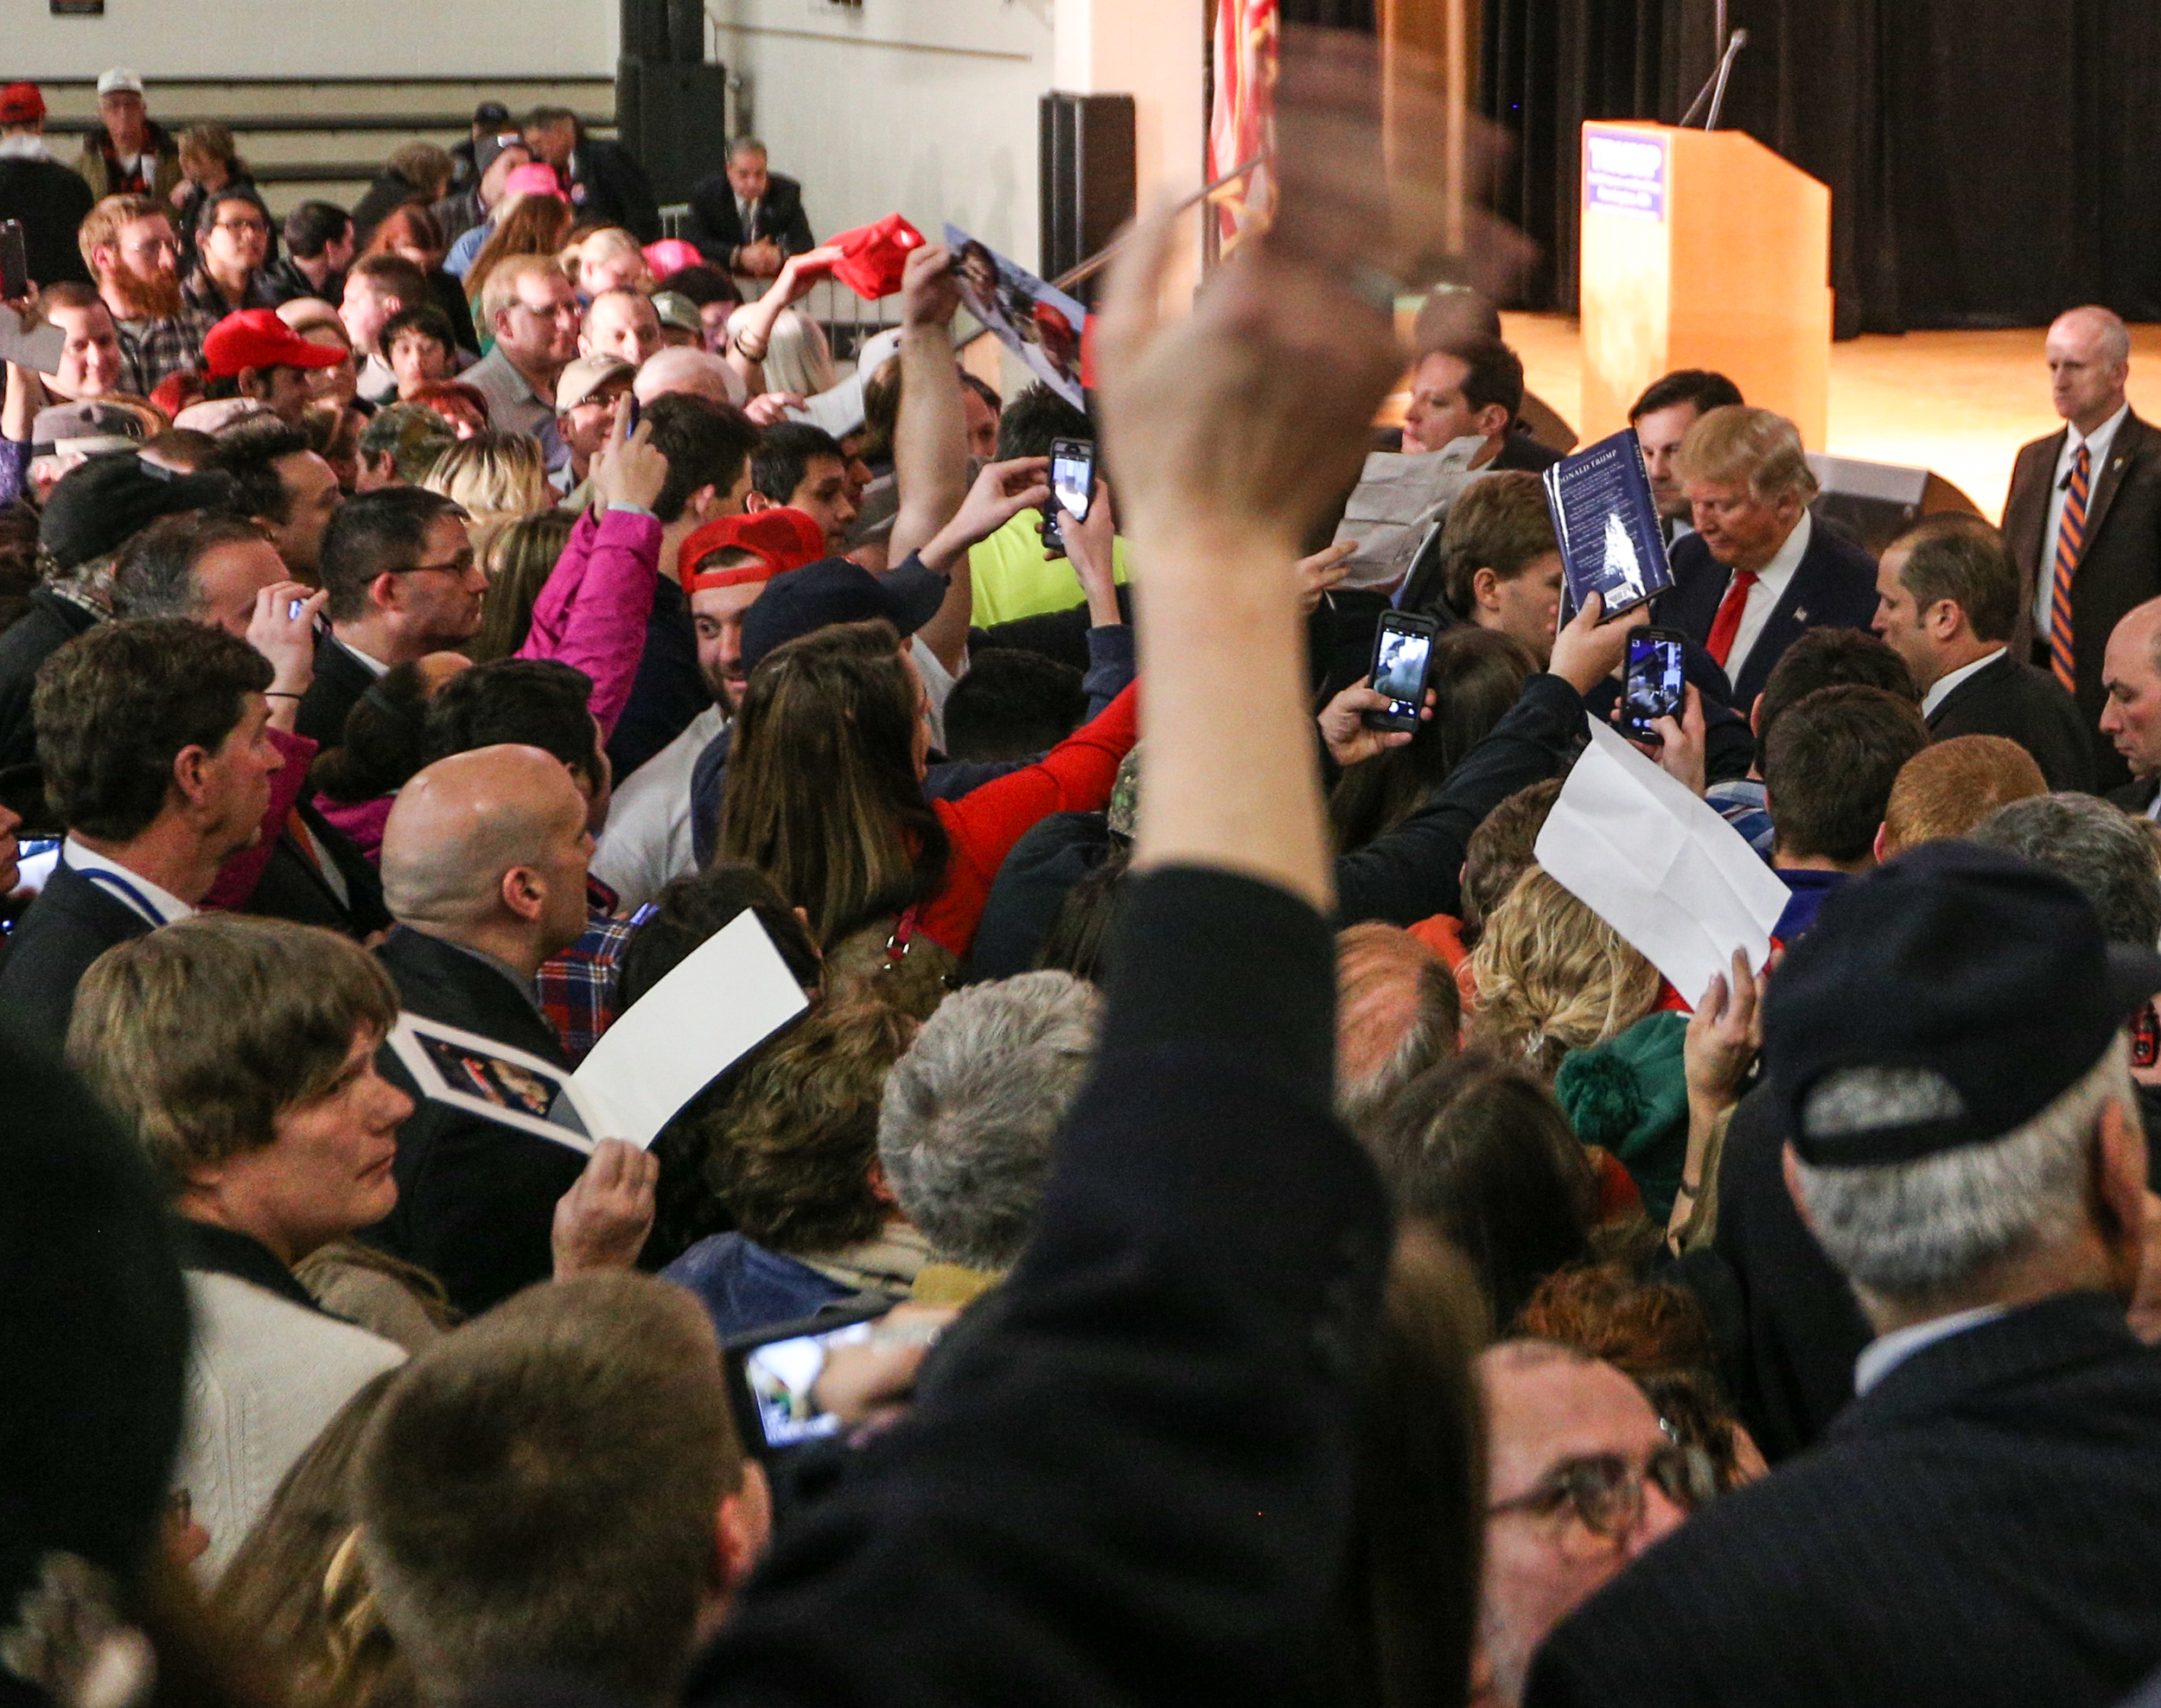 Attendees gather around Donald Trump as he signs autographs and takes photos at the conclusion of a Donald J. Trump for President Rally at Farmington High School, 40 Thayer Dr., Farmington, NH on Jan. 26, 2016.